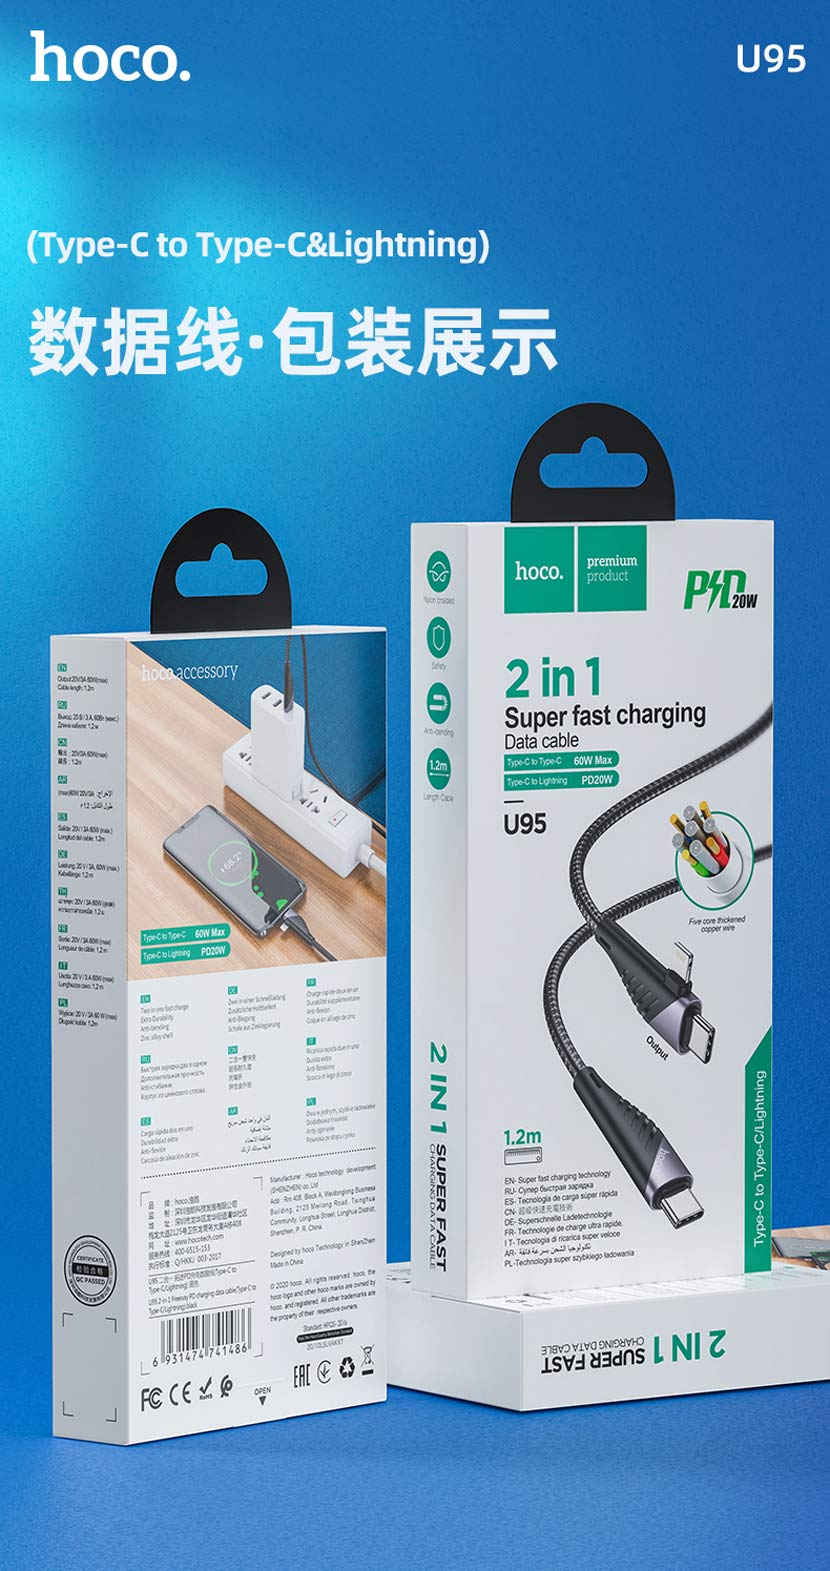 hoco news u95 freeway pd charging data cable type c lightning to type c package cn